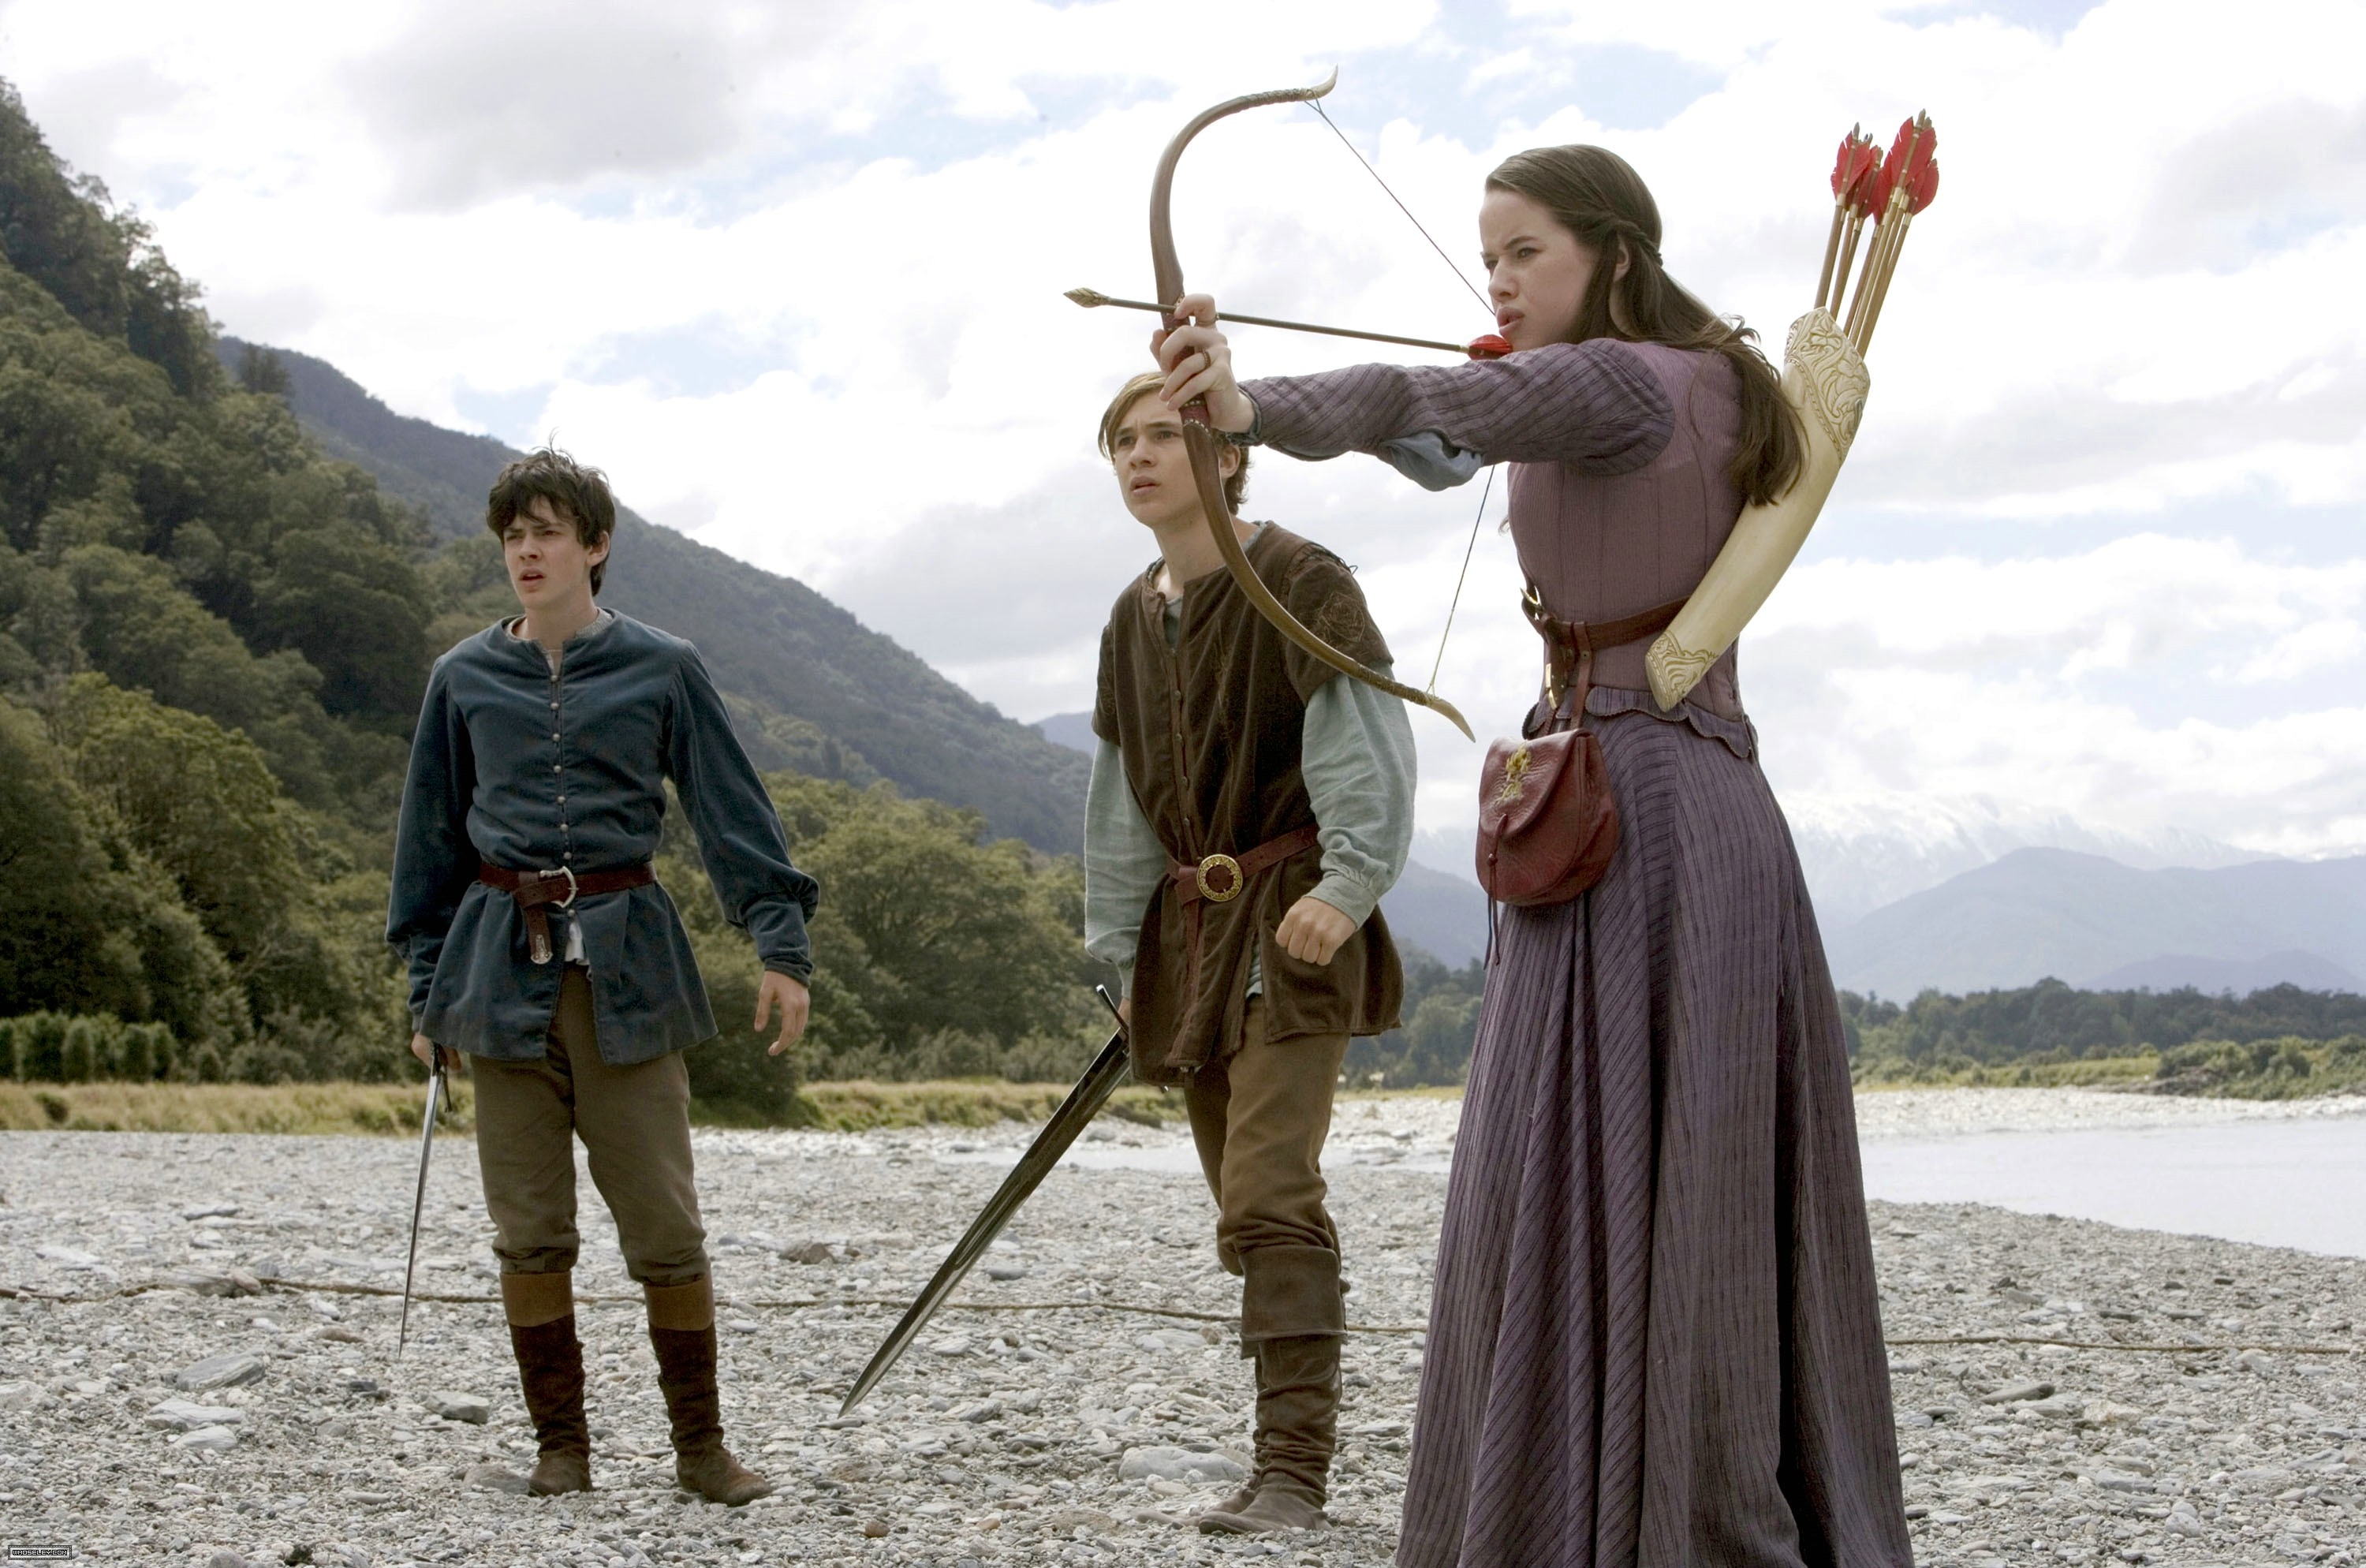 from Brenden narnia susan and peter dating